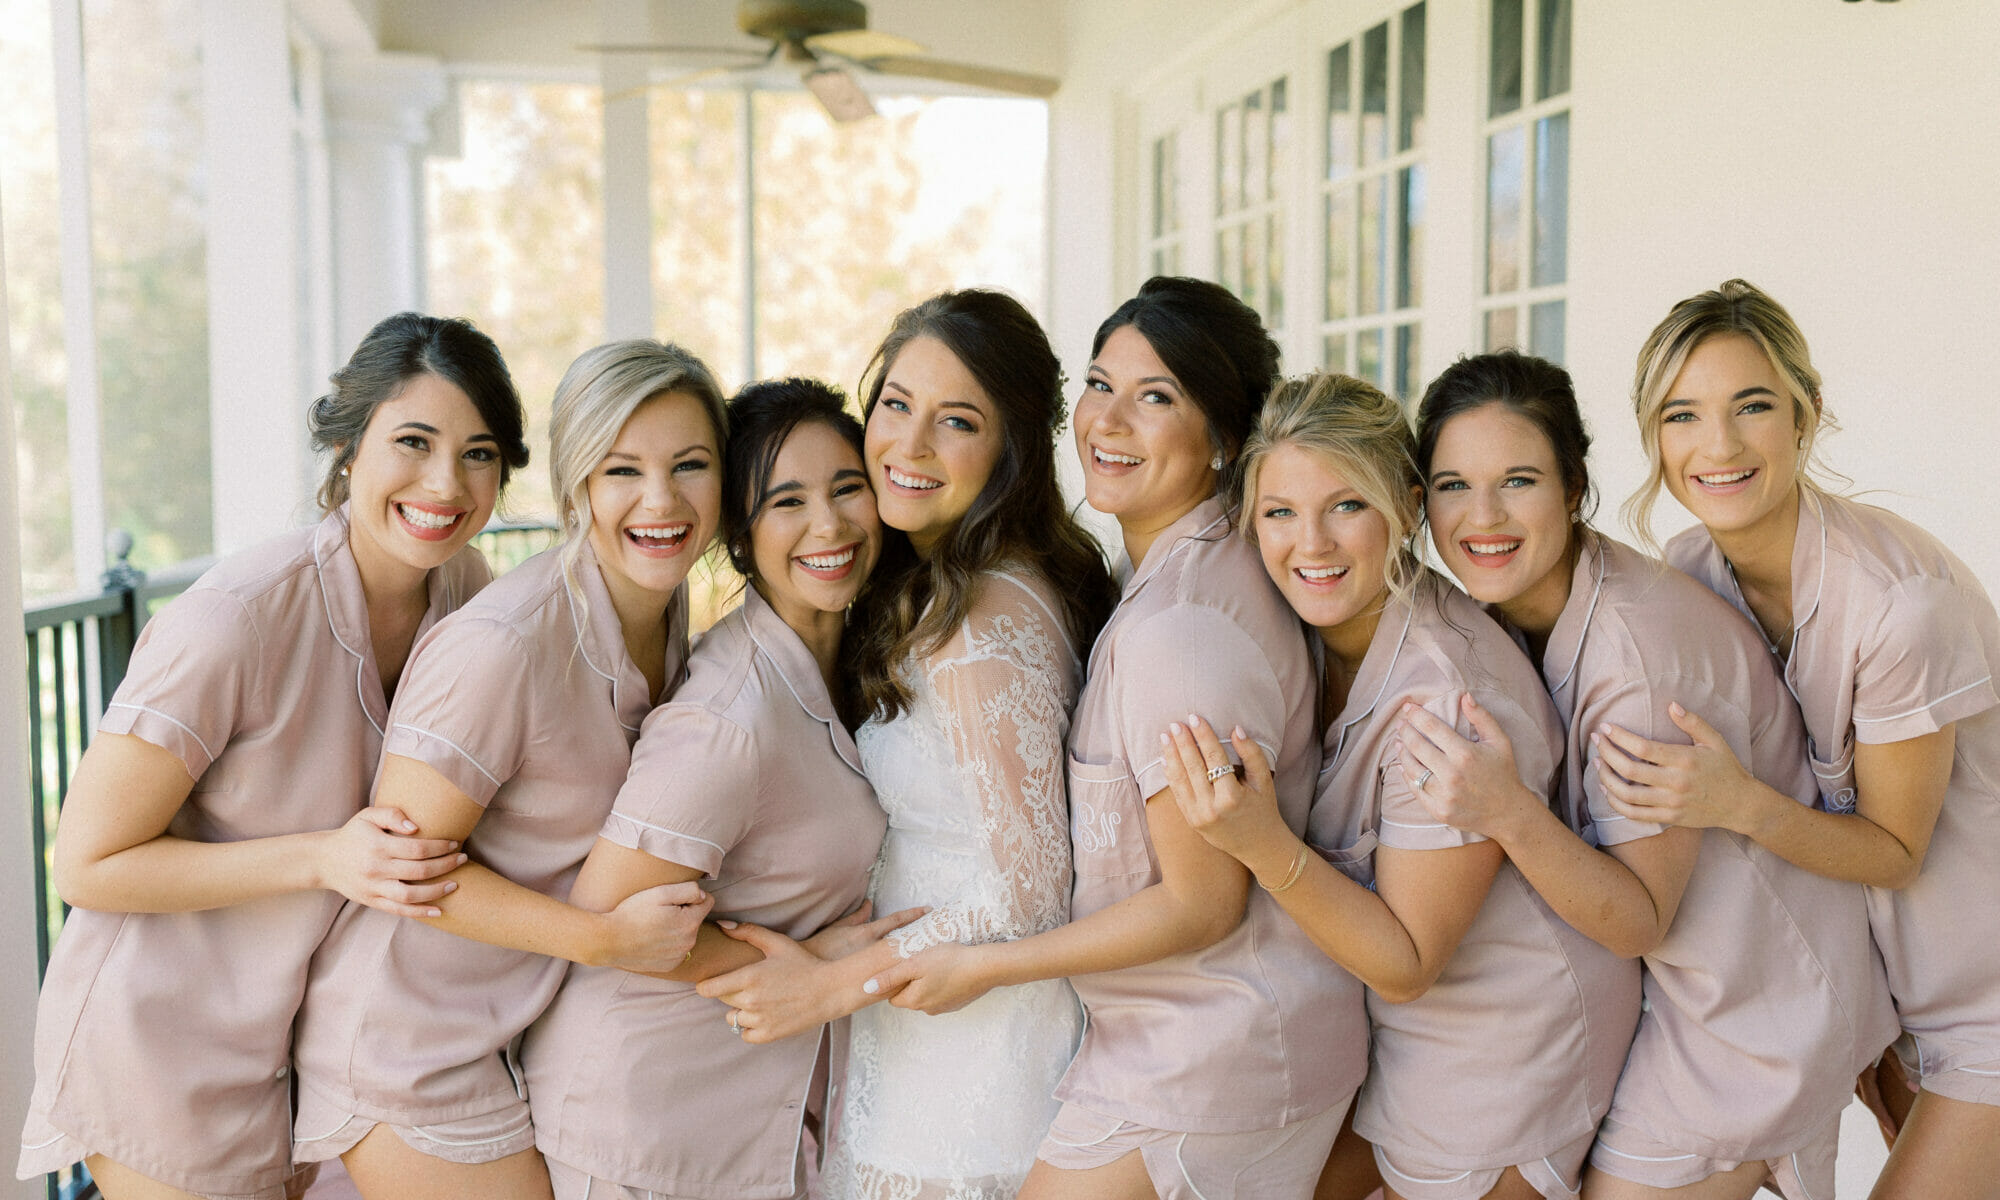 The bridal party celebrating with the bride